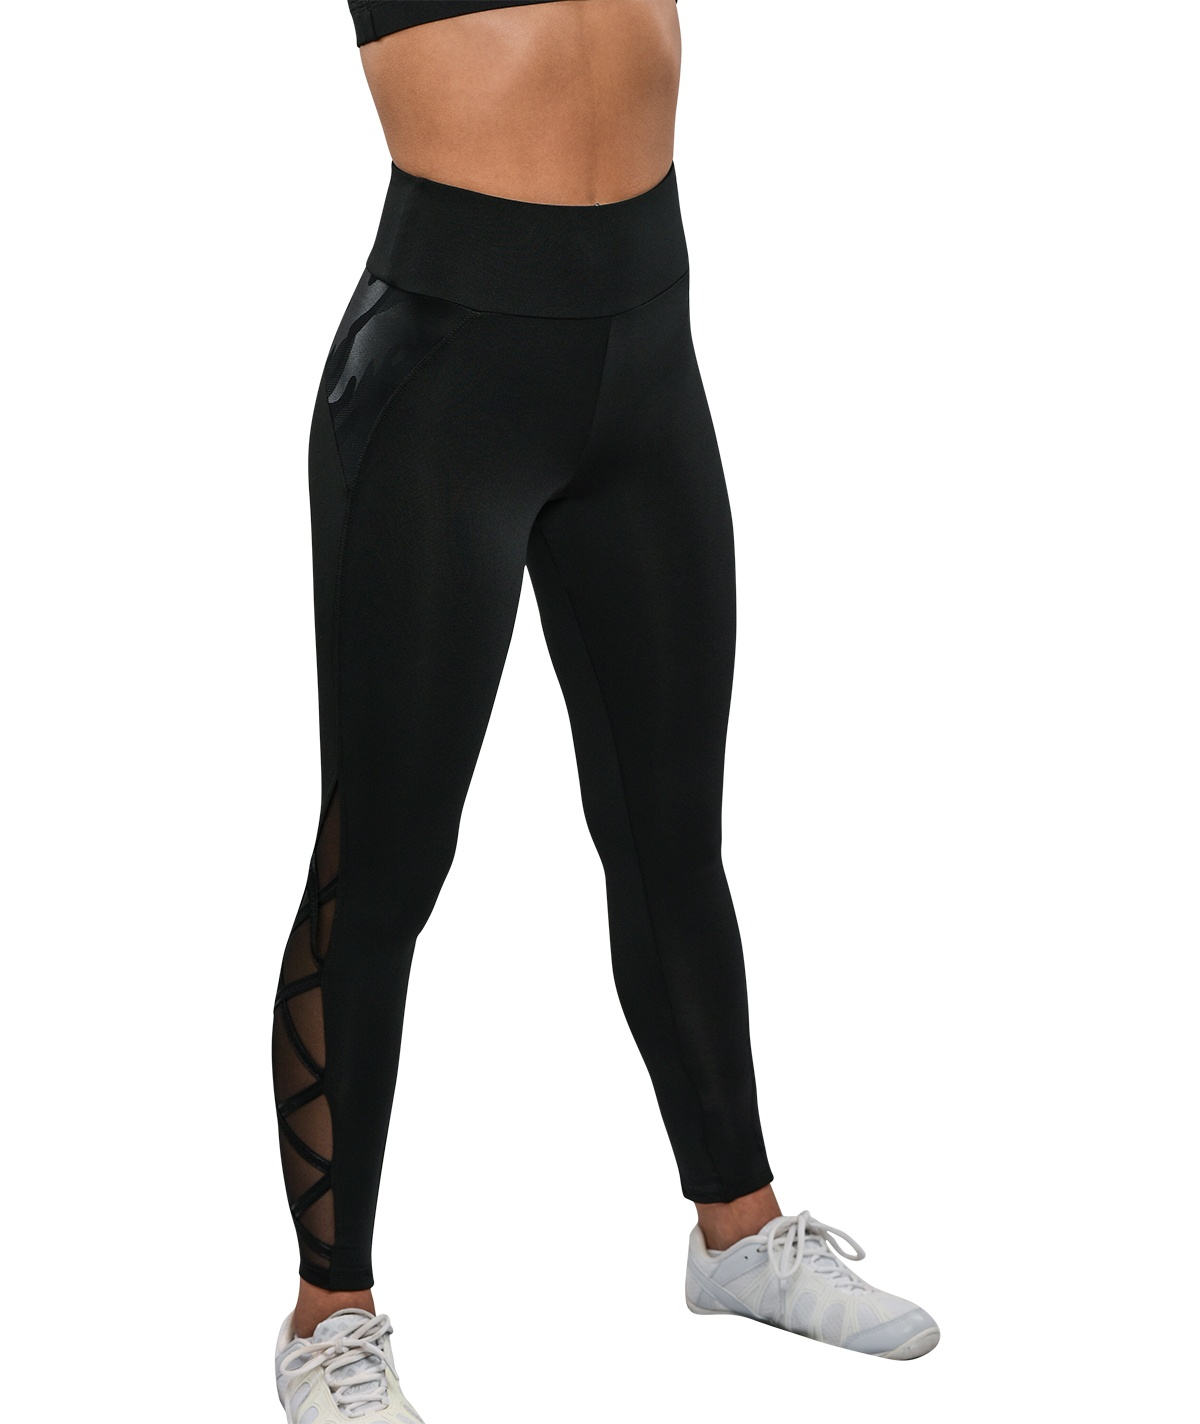 GK All Star Camou And Mesh High Waisted Criss Cross Capris